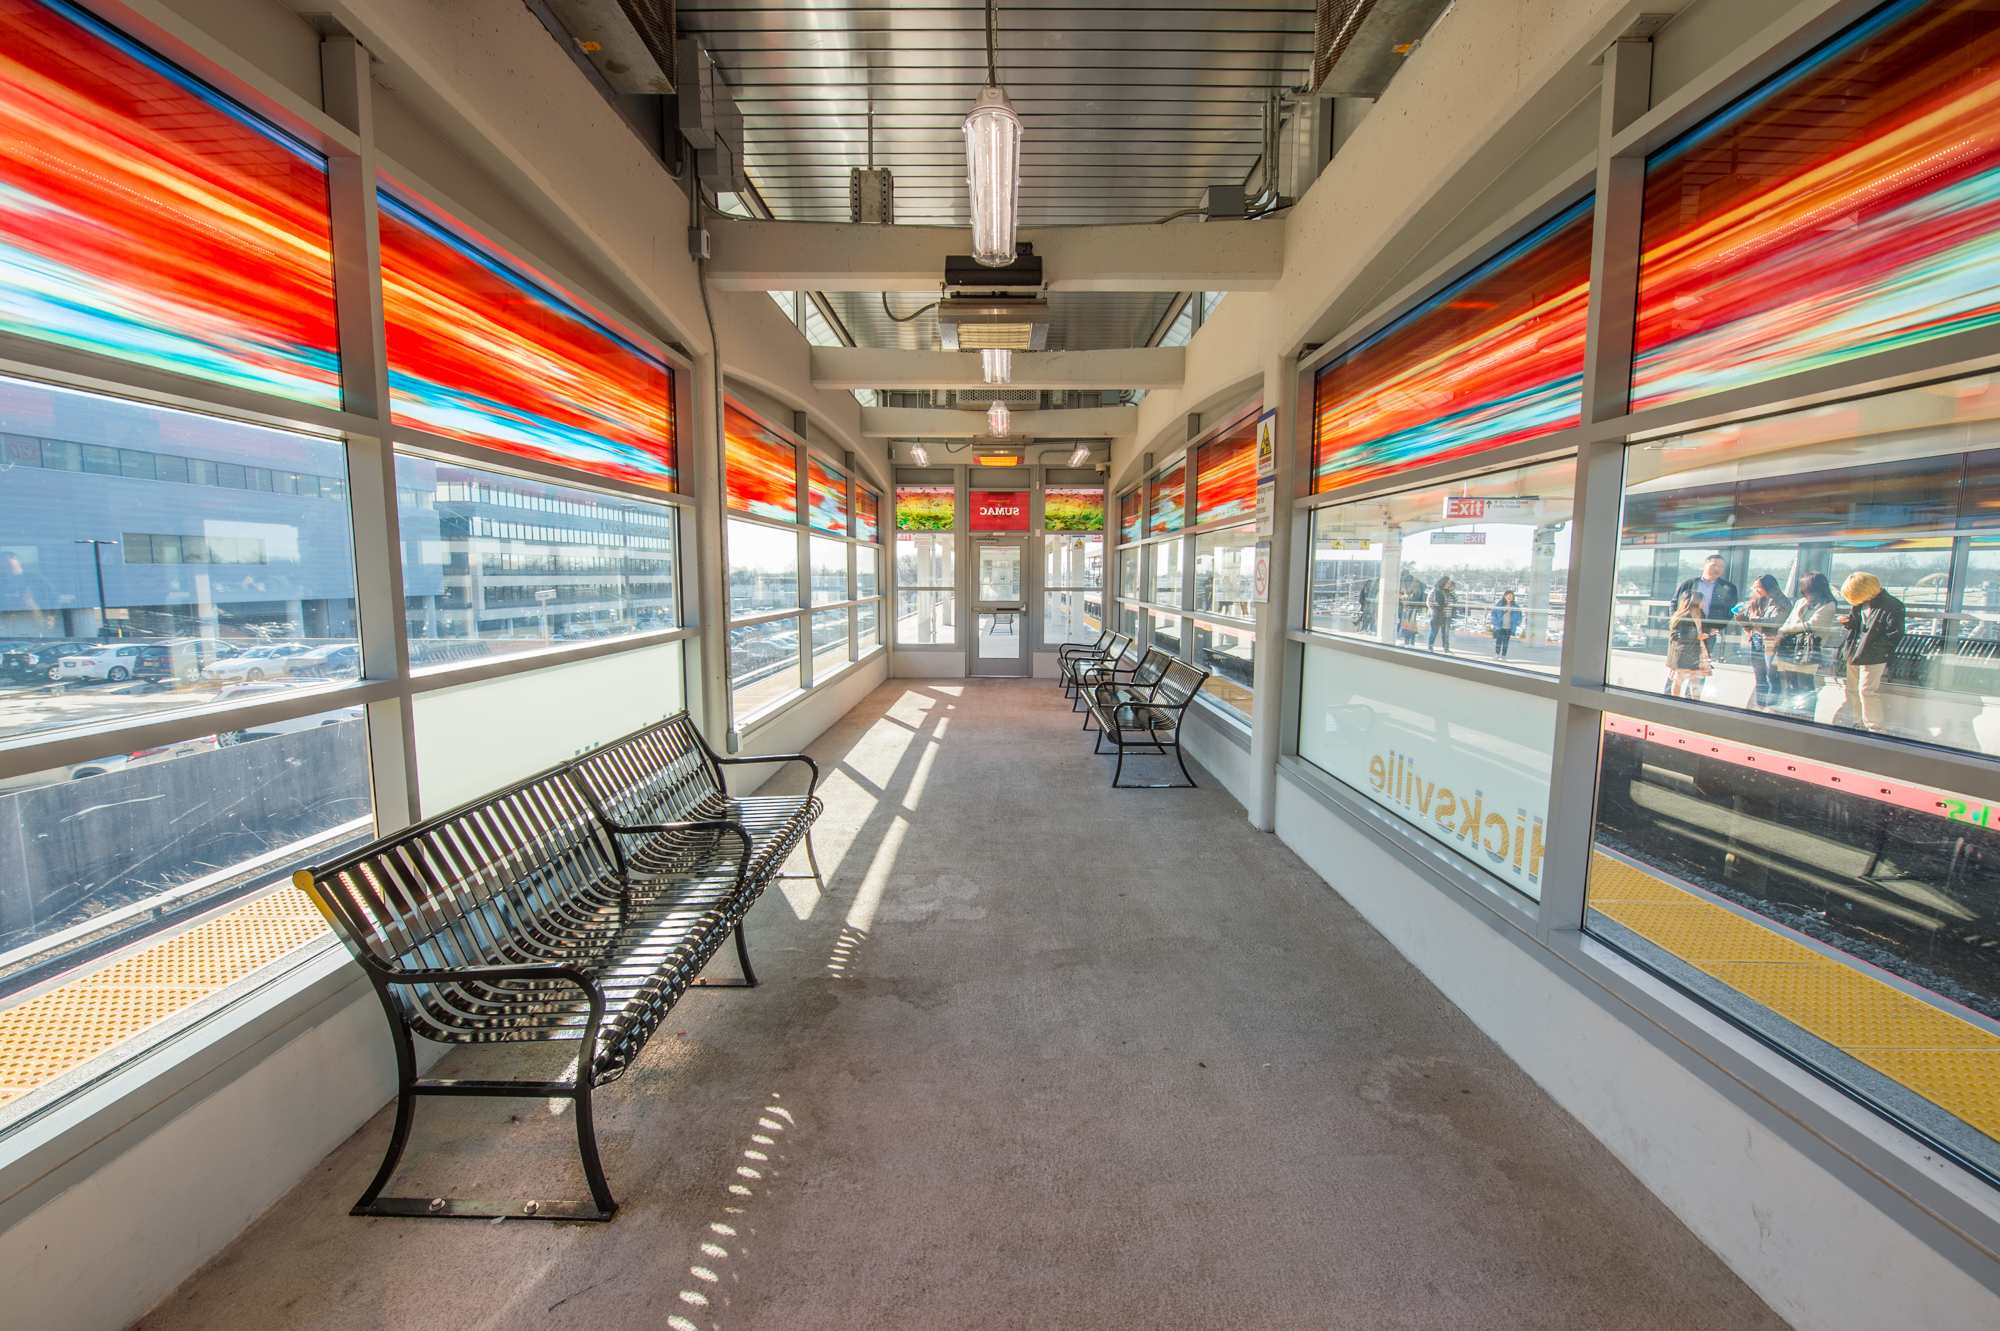 Hicksville Station - 02-22-19 (Photo by MTA Capital Construction/Trent Reeves)